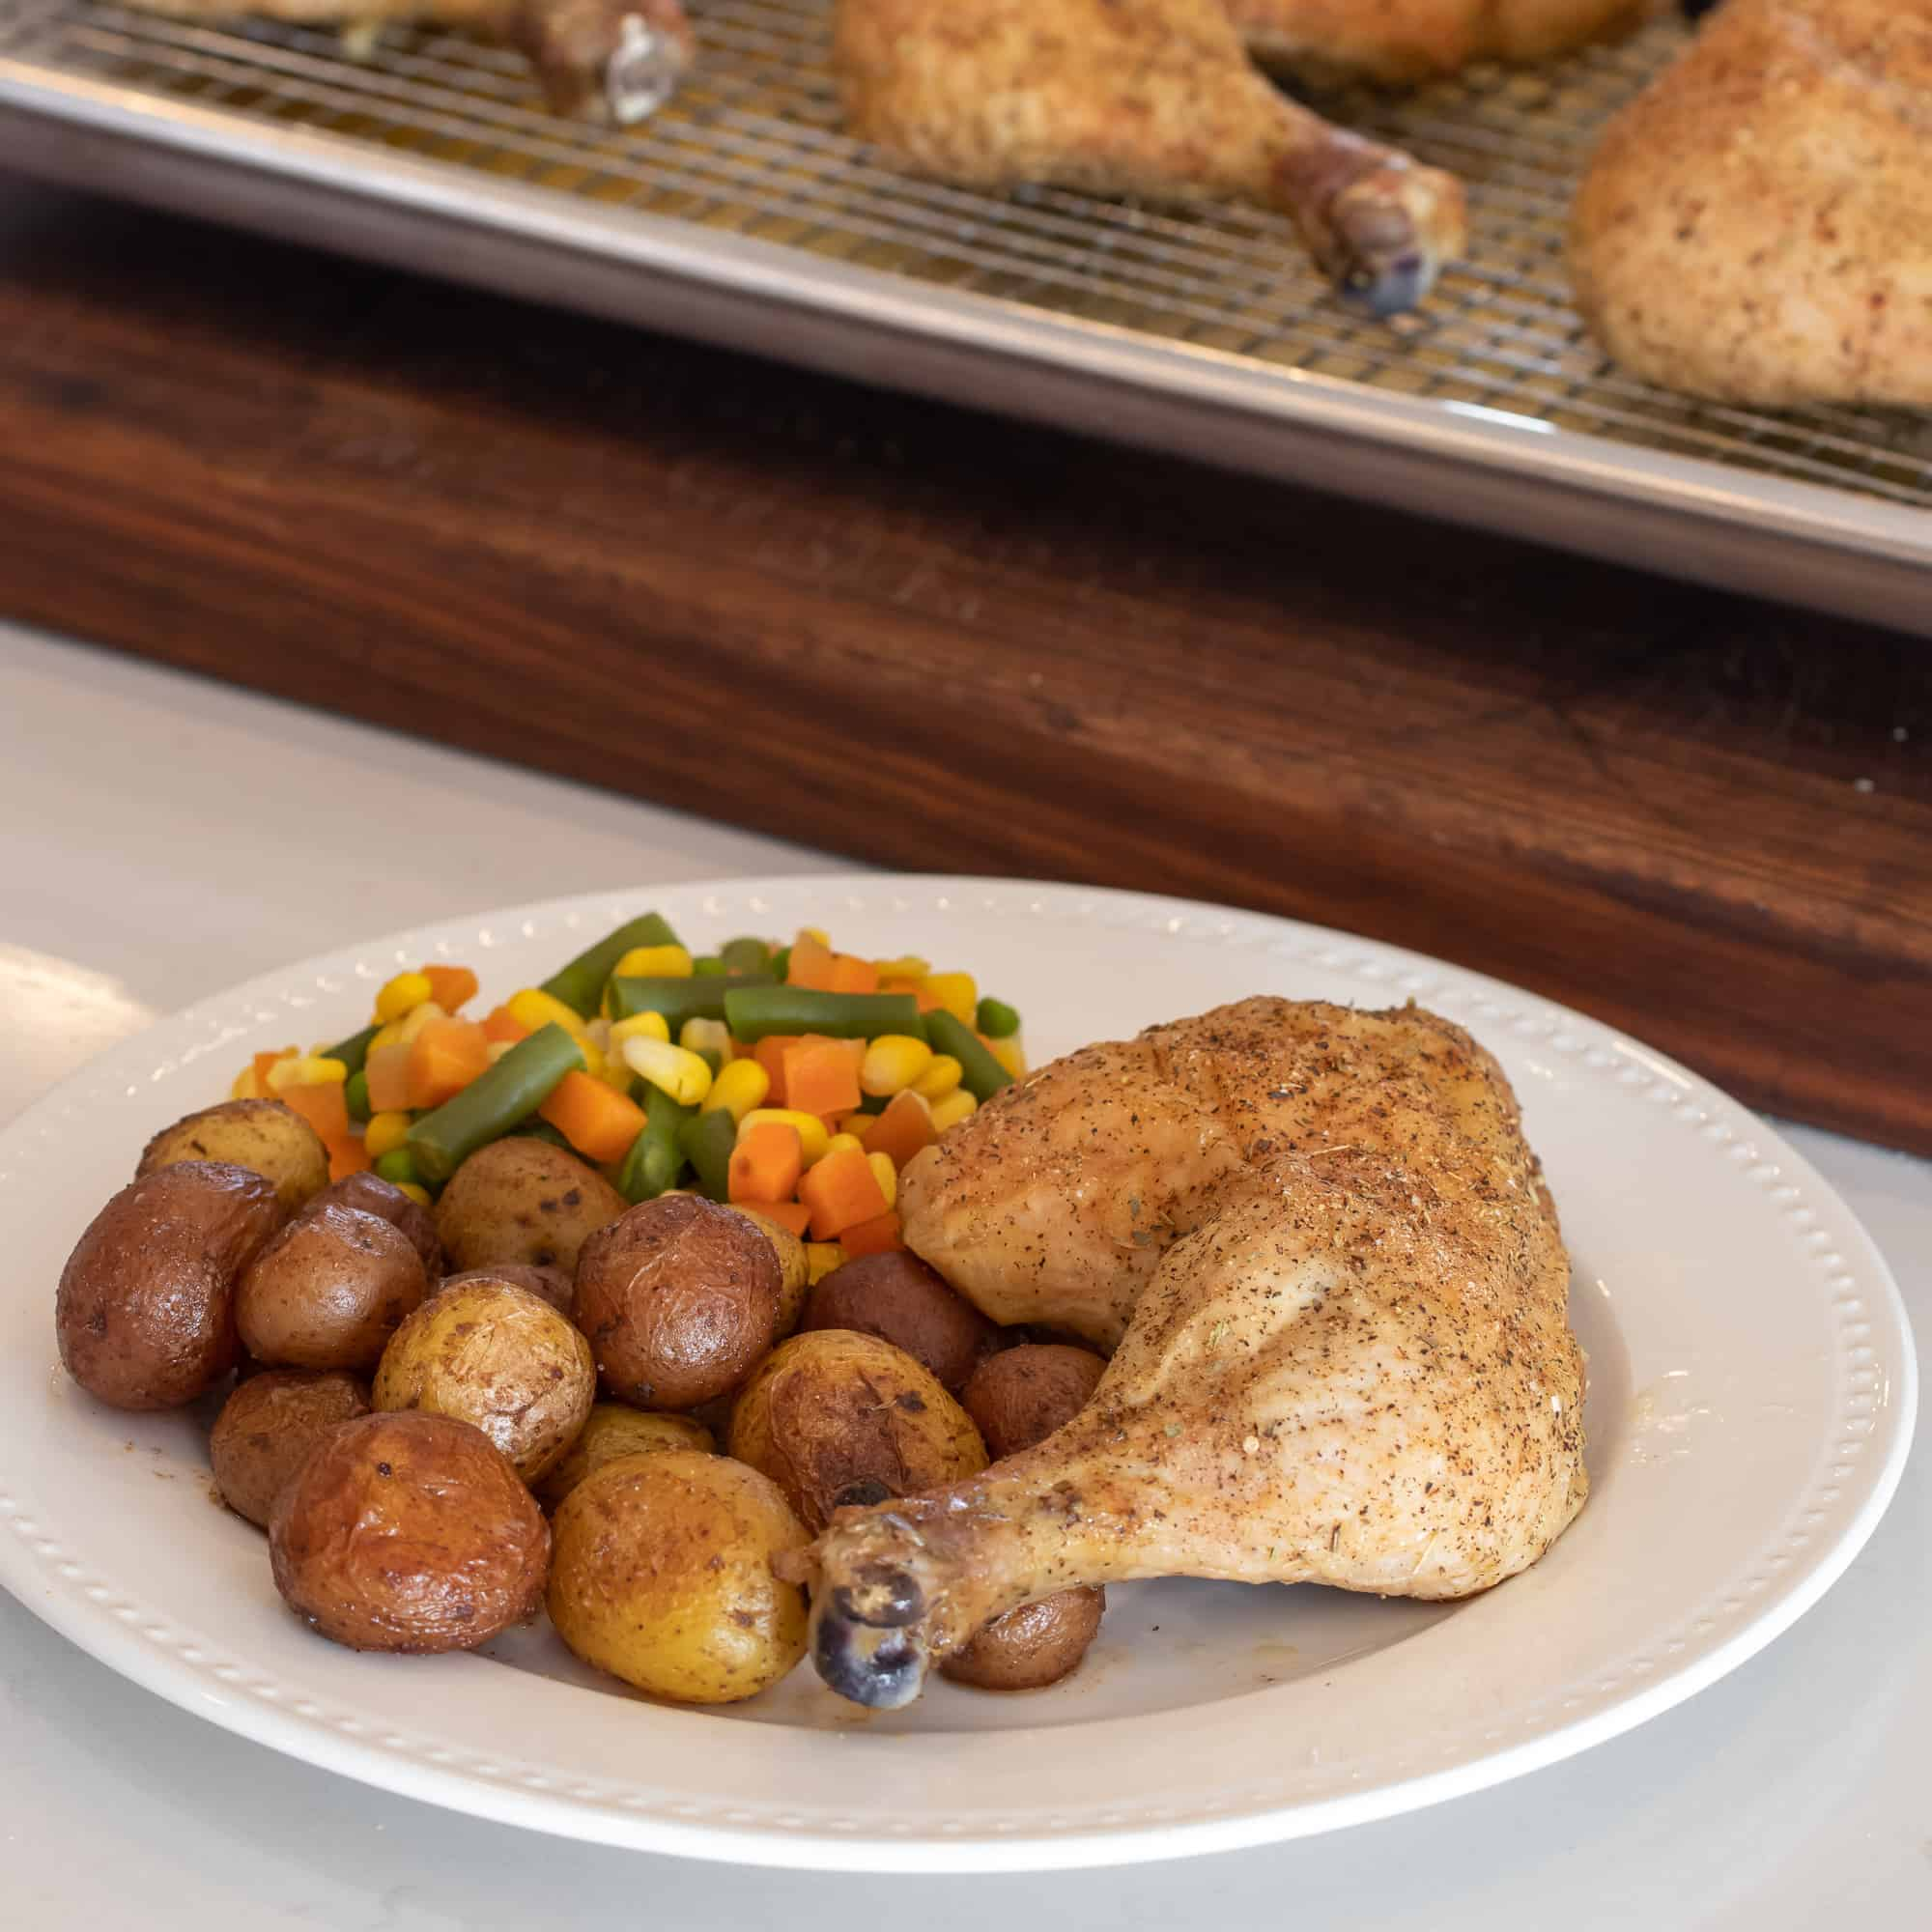 Baked chicken leg on a plate with mini potatoes and mixed vegetables.